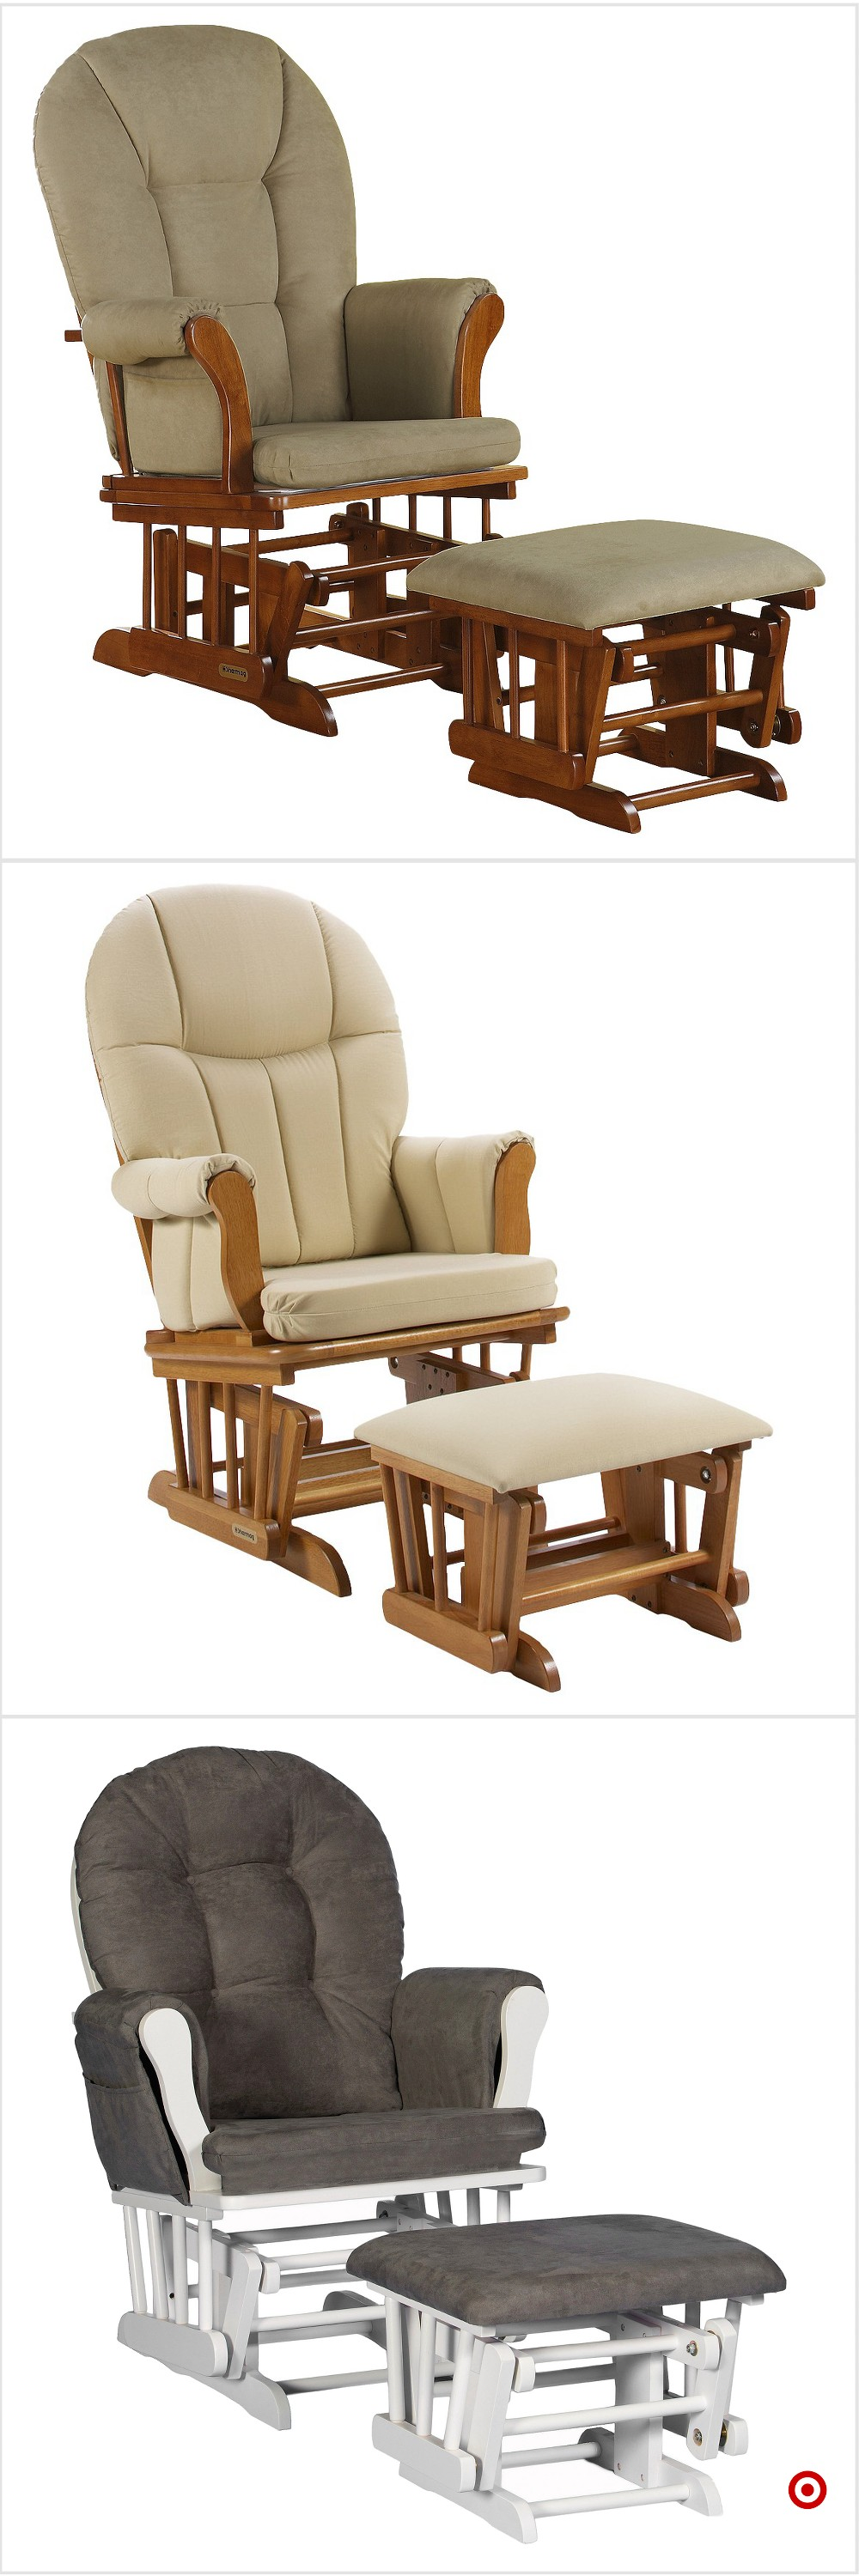 Shop Target for glider and ottoman set you will love at